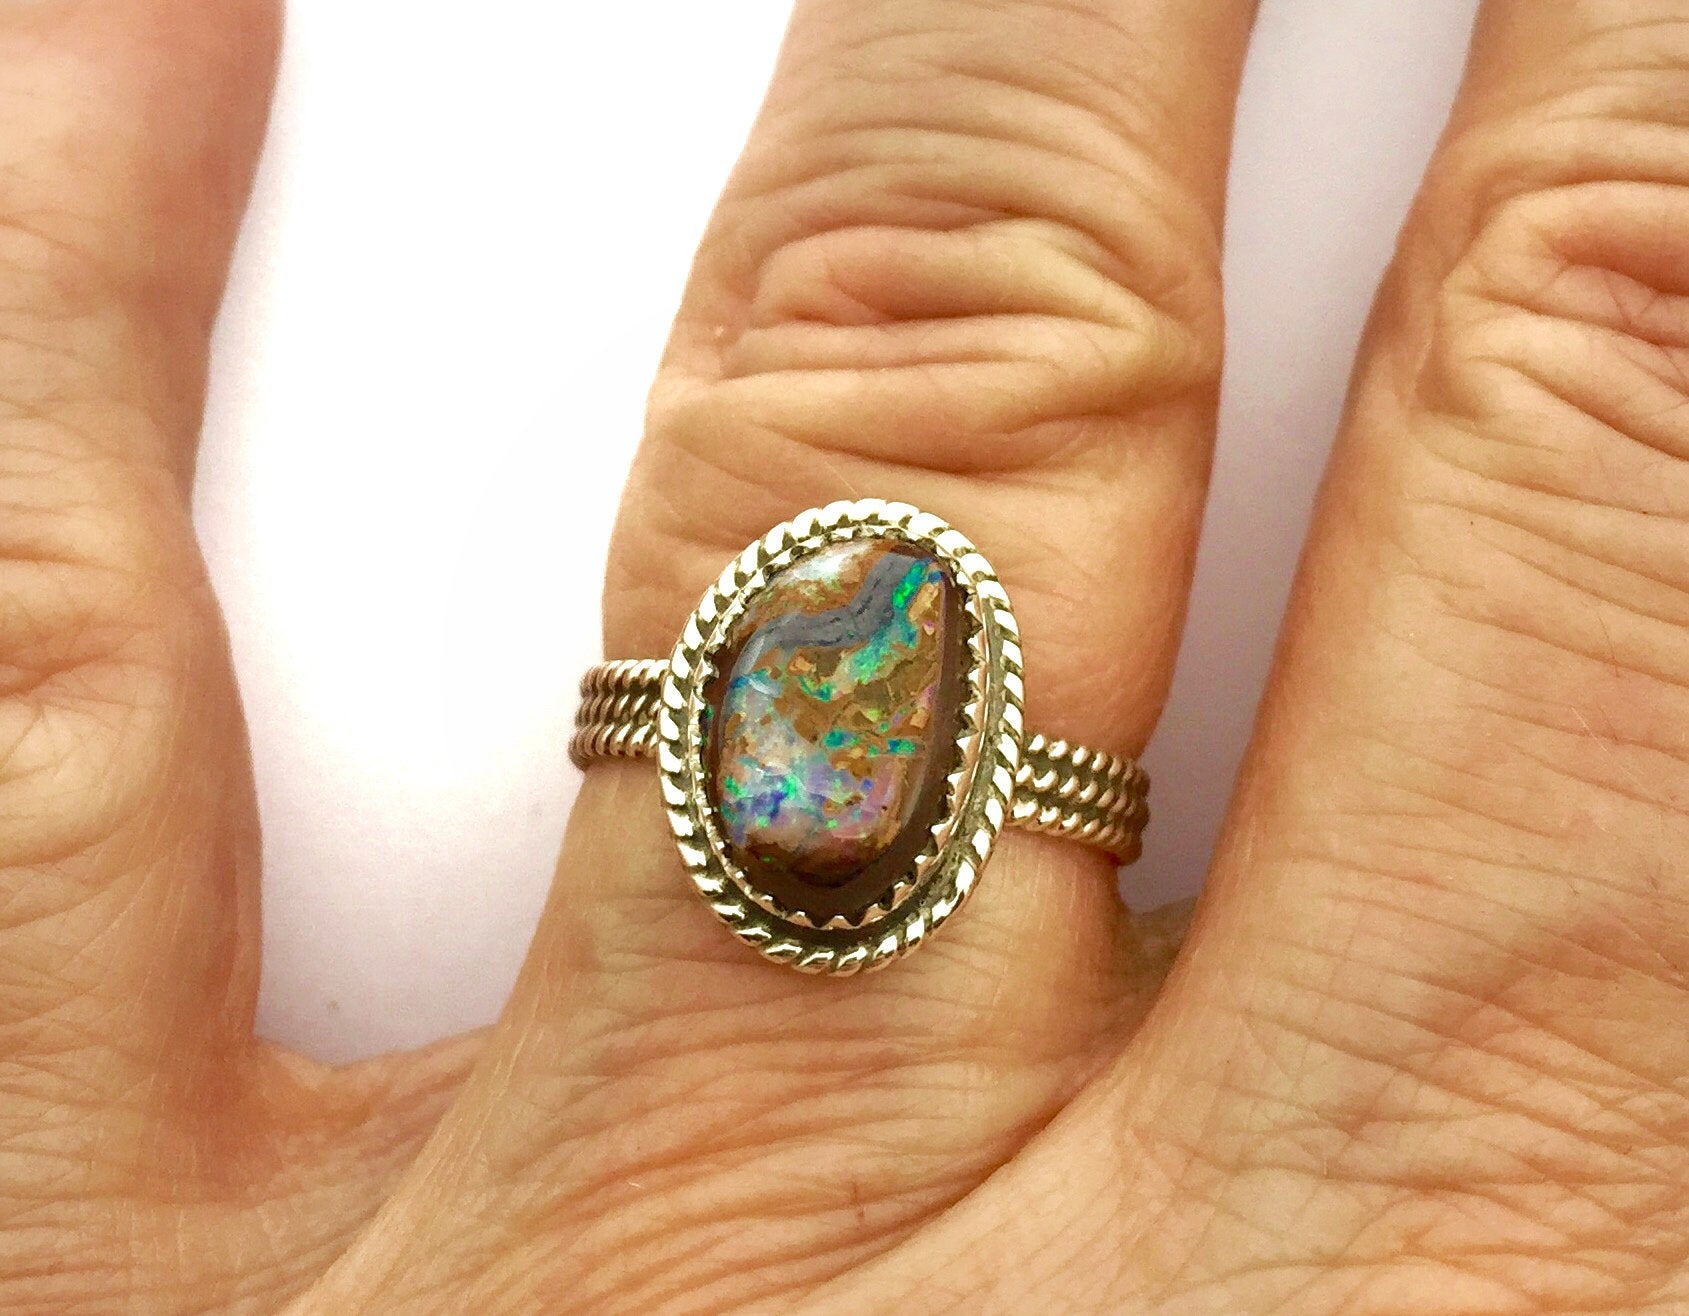 Australian Opal Ring, Opal Statement Ring, Boho Ring, Opal and Sterling Ring, Boulder Opal Ring, October Birthday Gift, Womens Ring